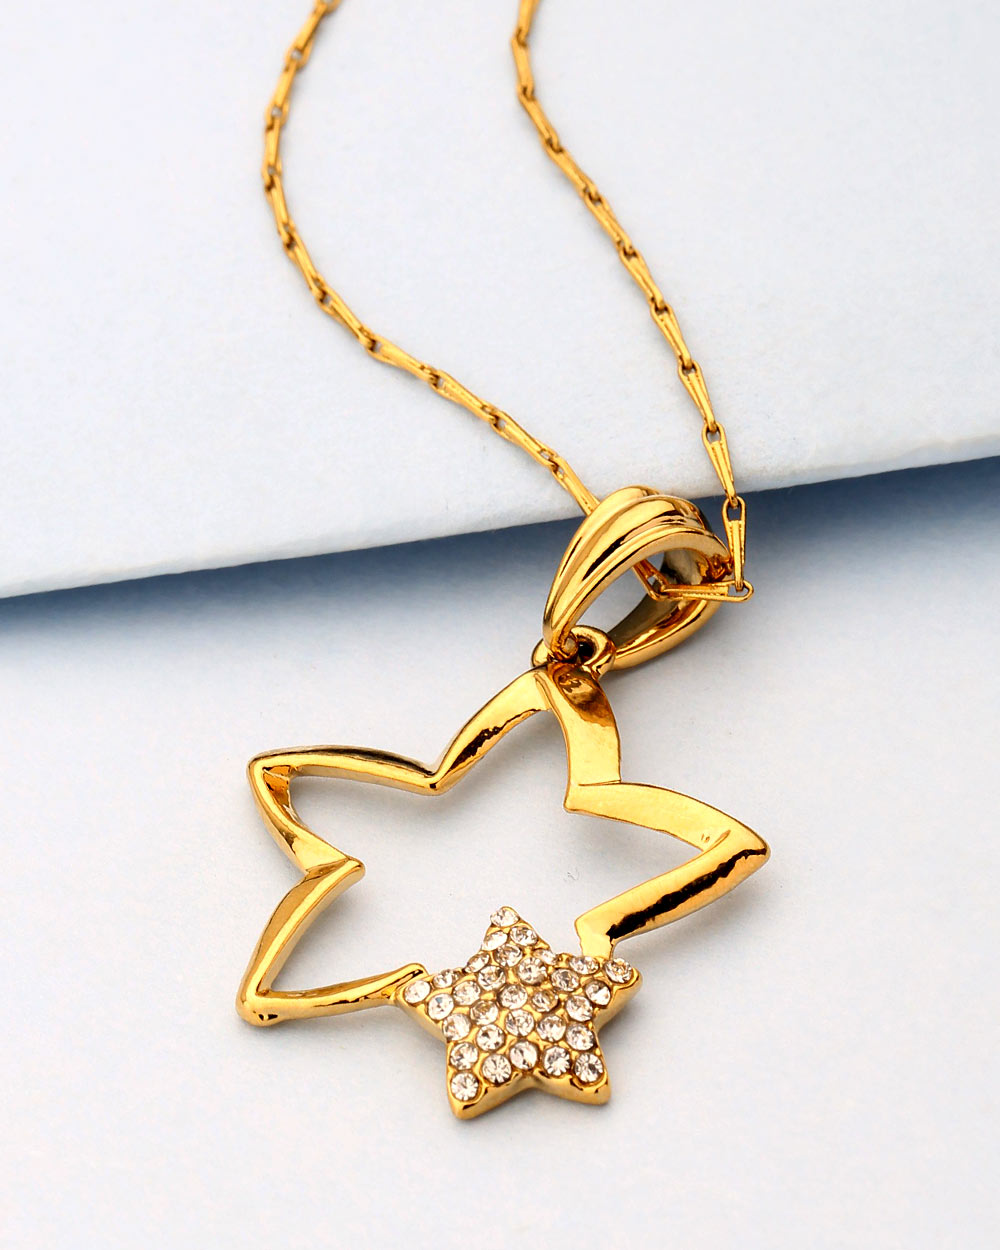 Buy Charming Star Design Pendant with Chain For Women Online India ...